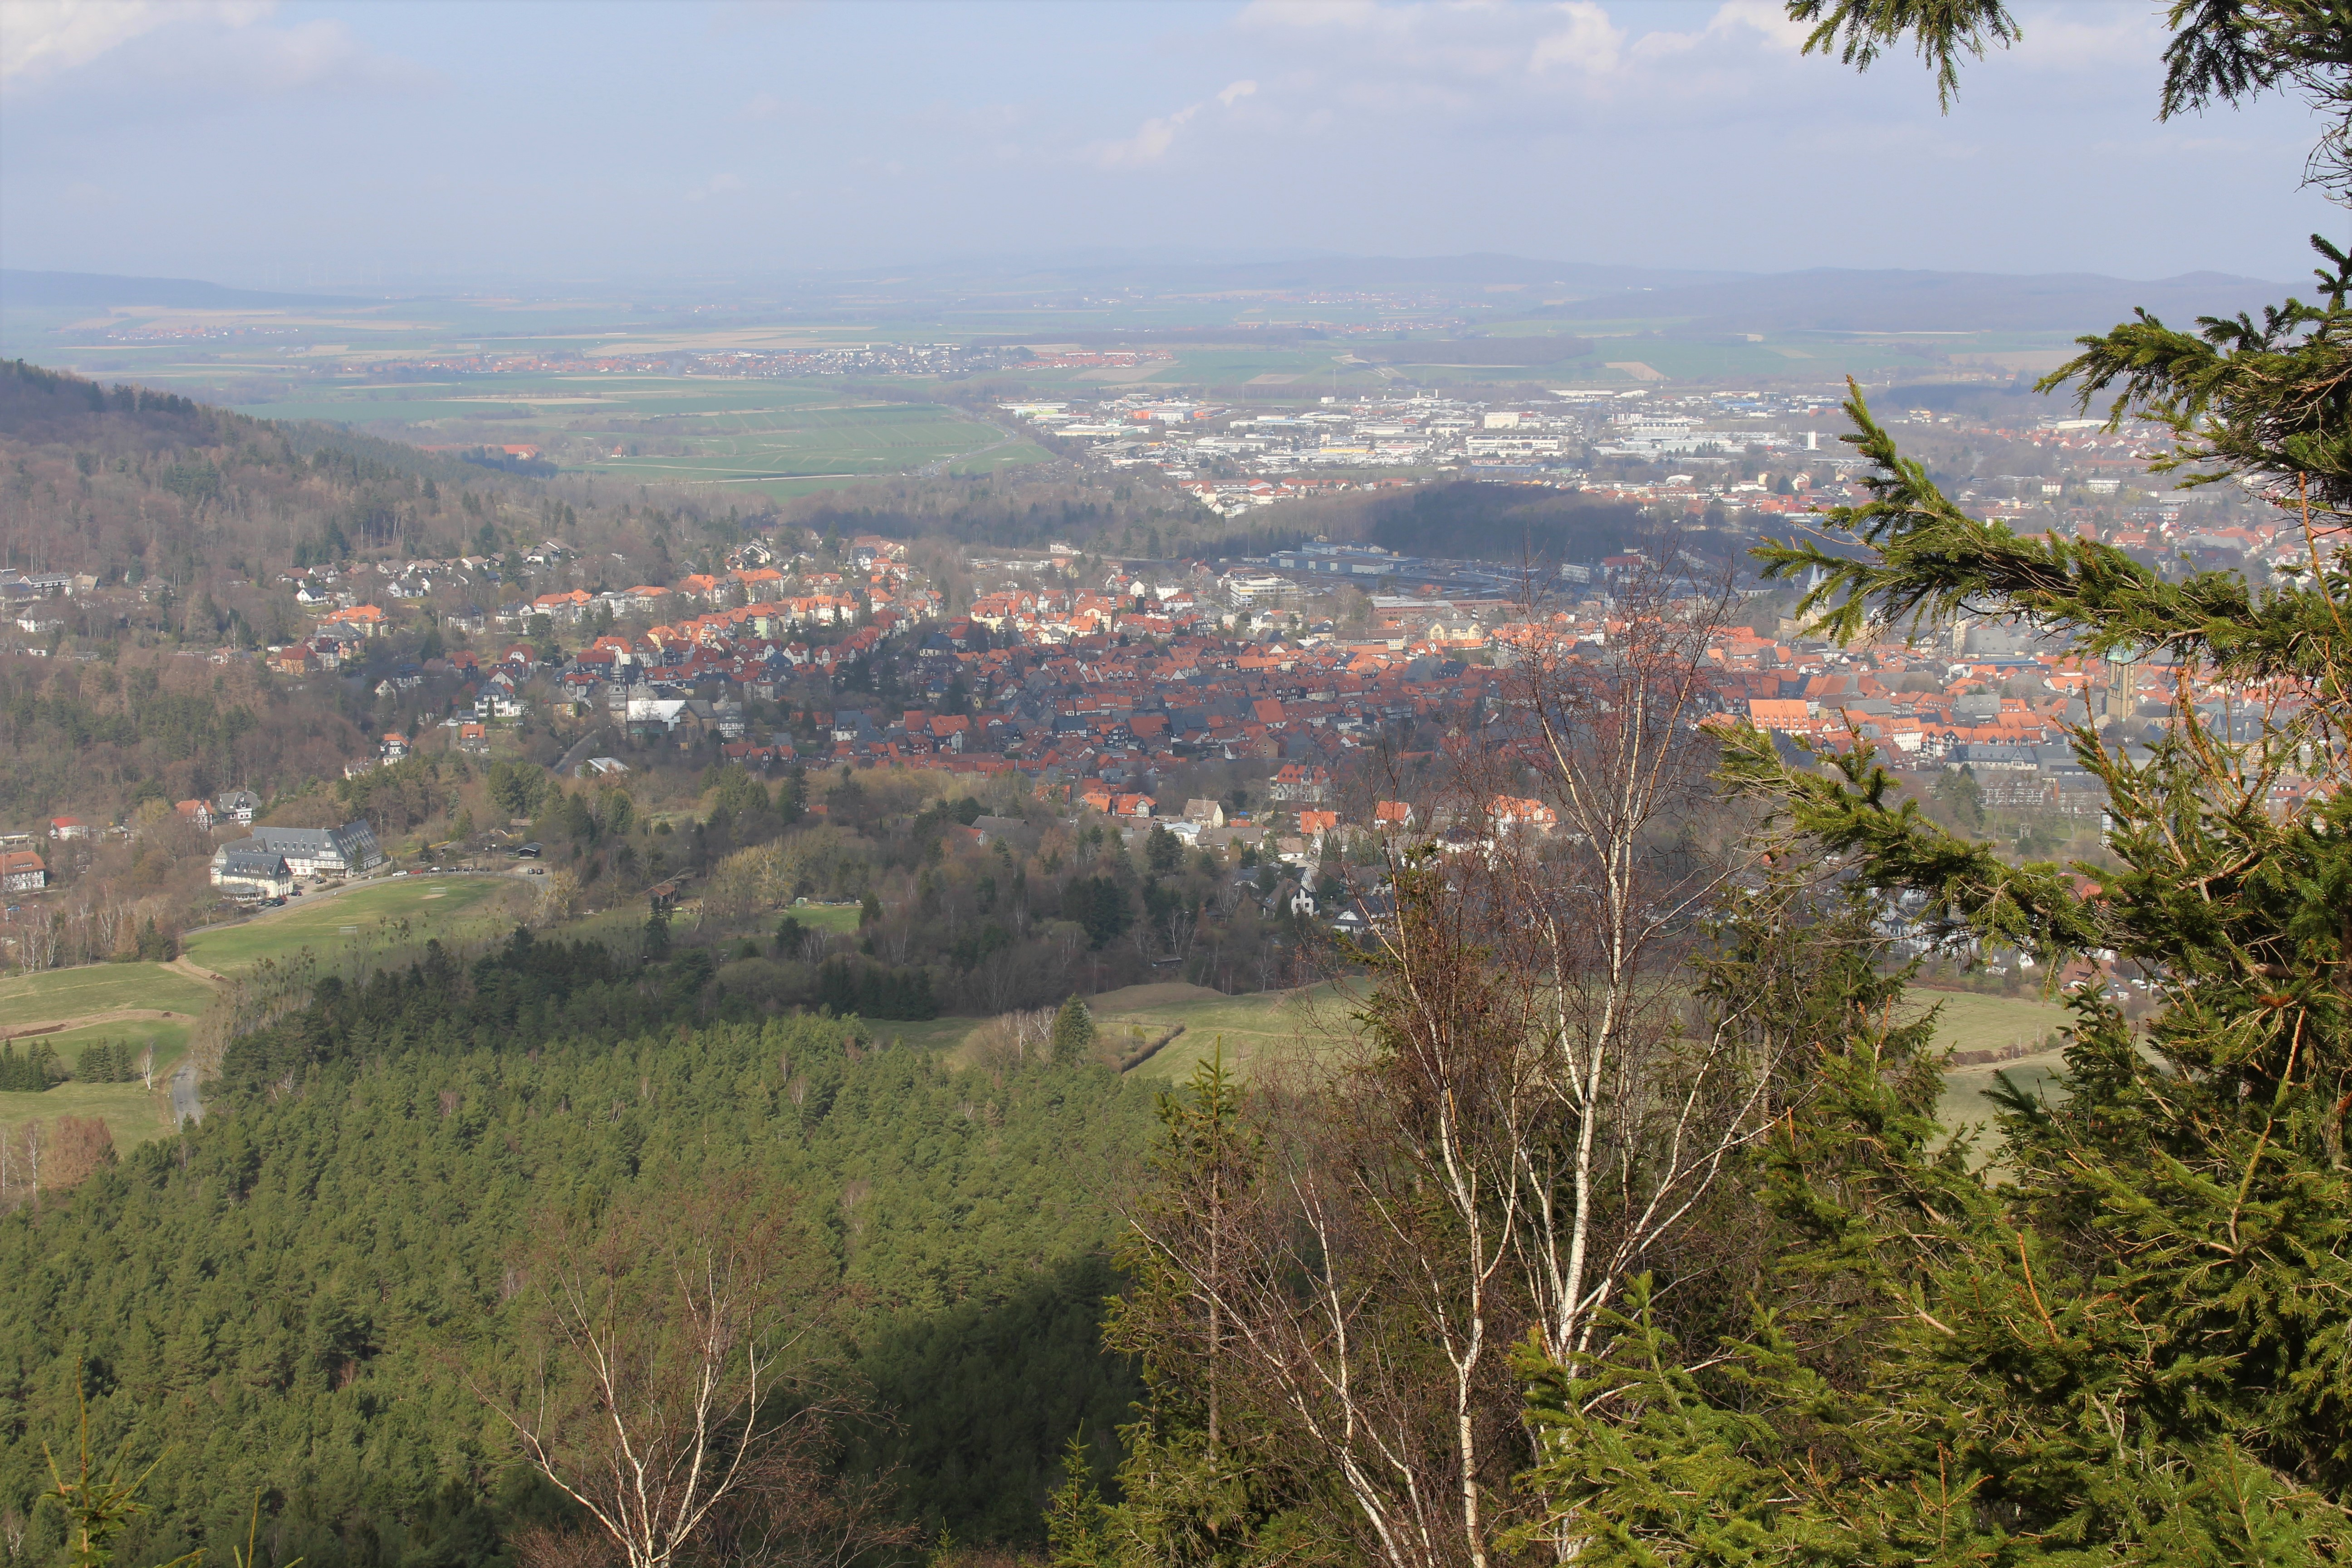 The view of Goslar from the top of our trail on the mountain. Photo by Dragonfly Leathrum